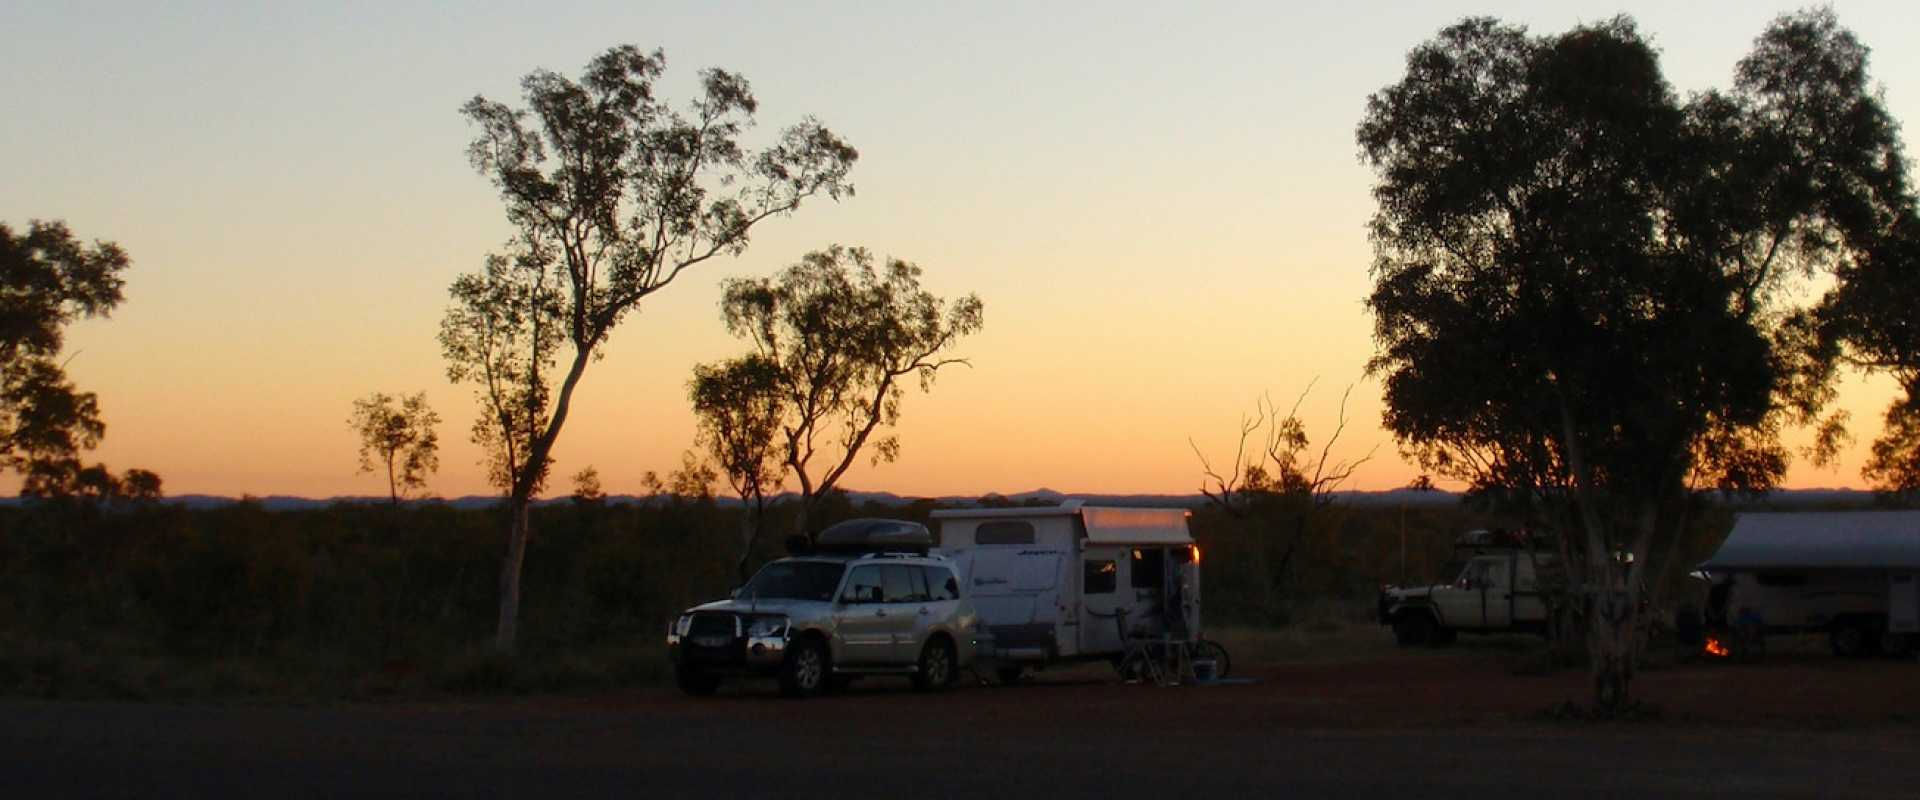 Outback QLD